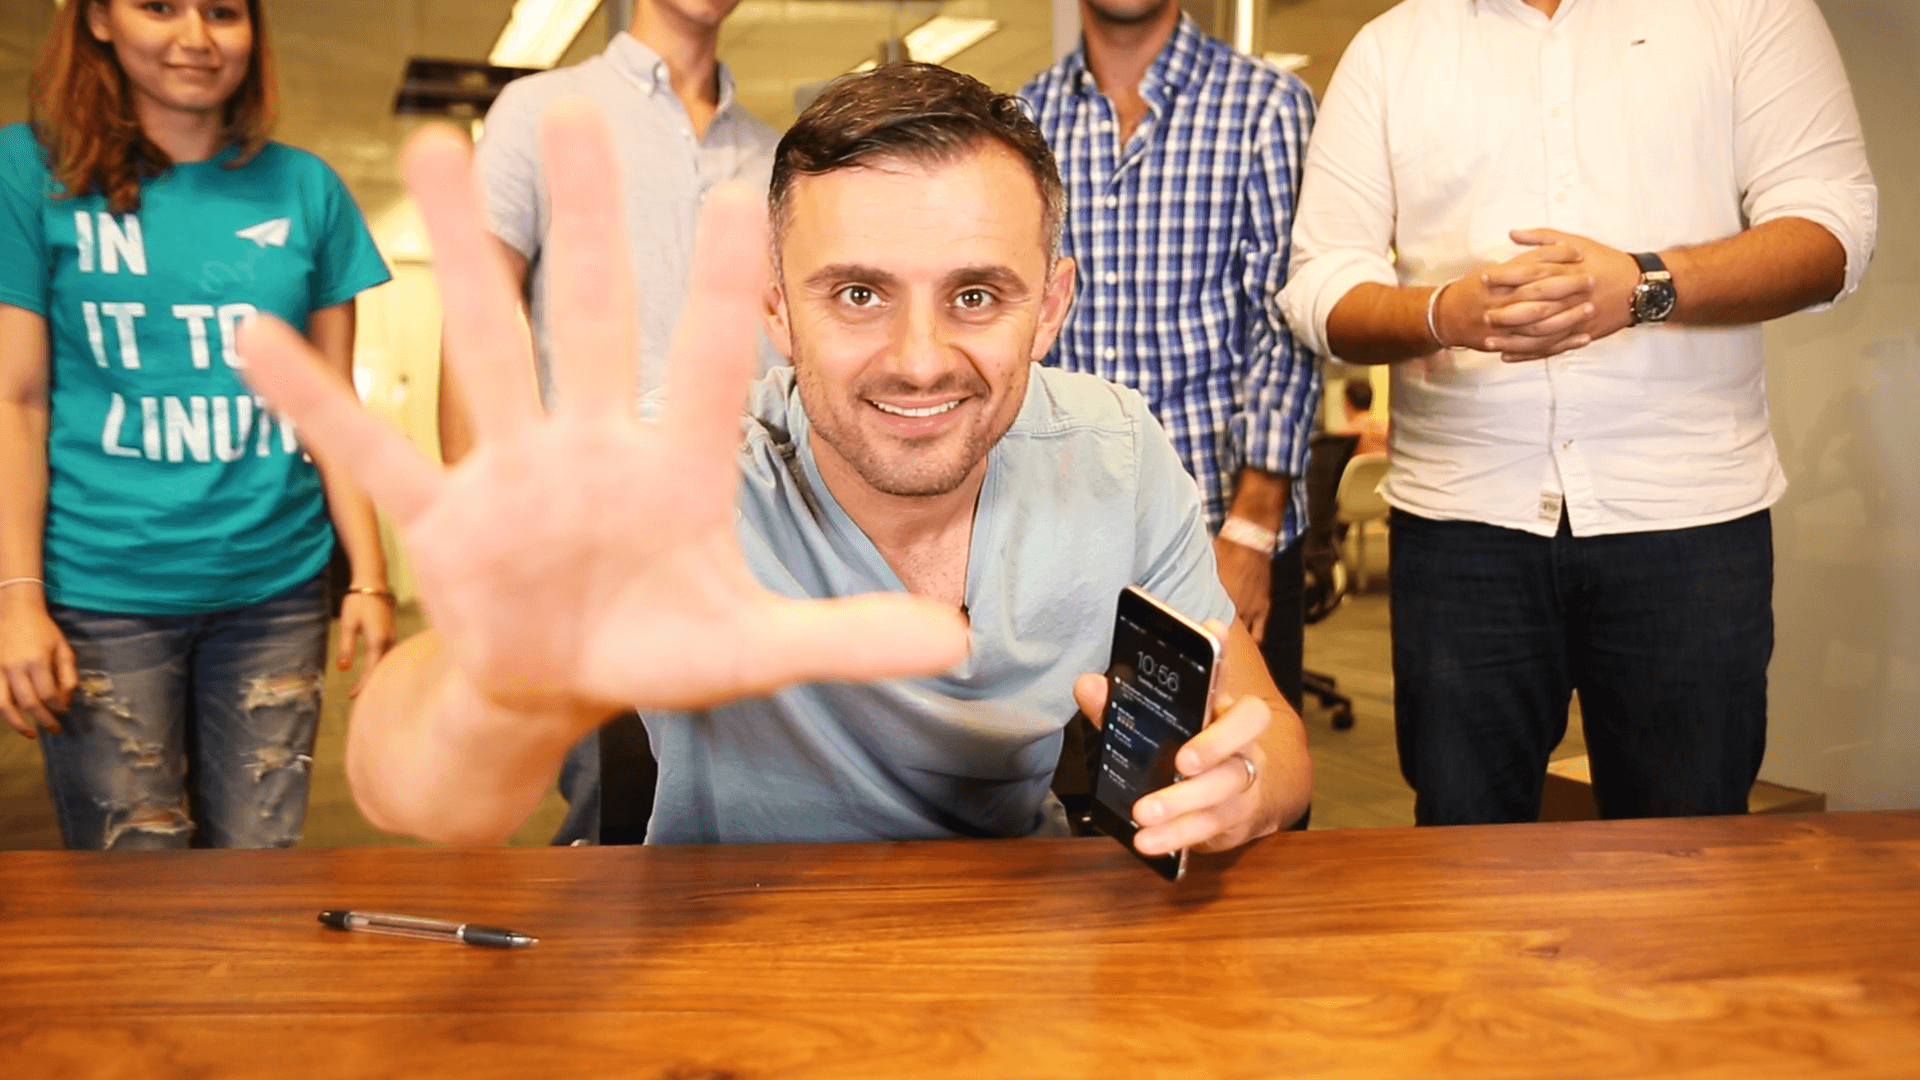 #AskGaryVee Episode 130 shows Gary Vaynerchuk with Vaynermedia interns